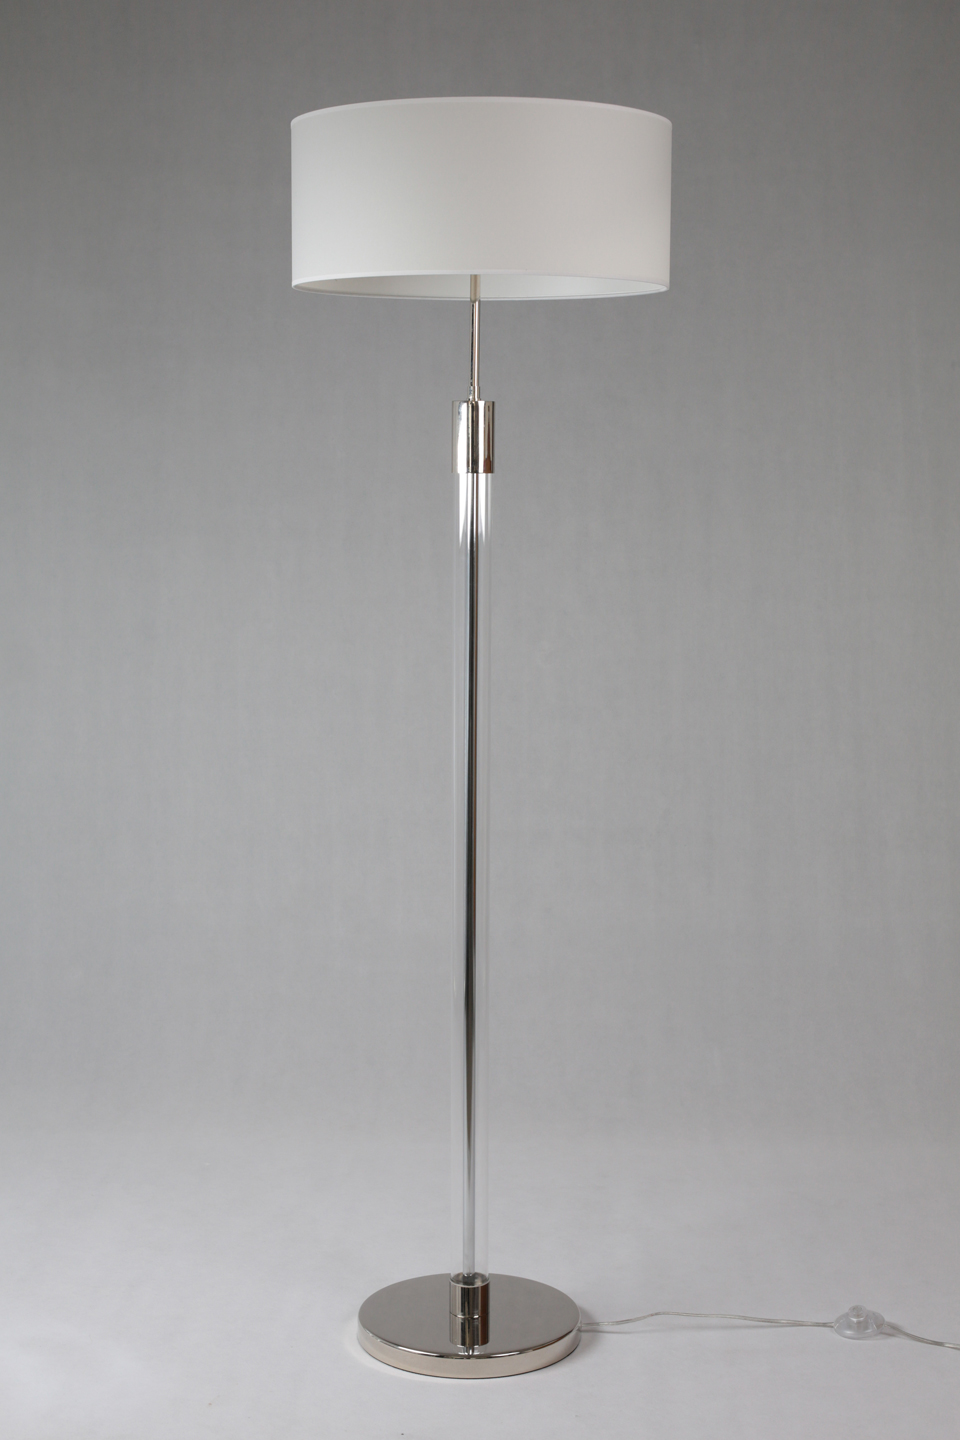 Gl And Metal Floor Lamp Cylindrical White Lampshade